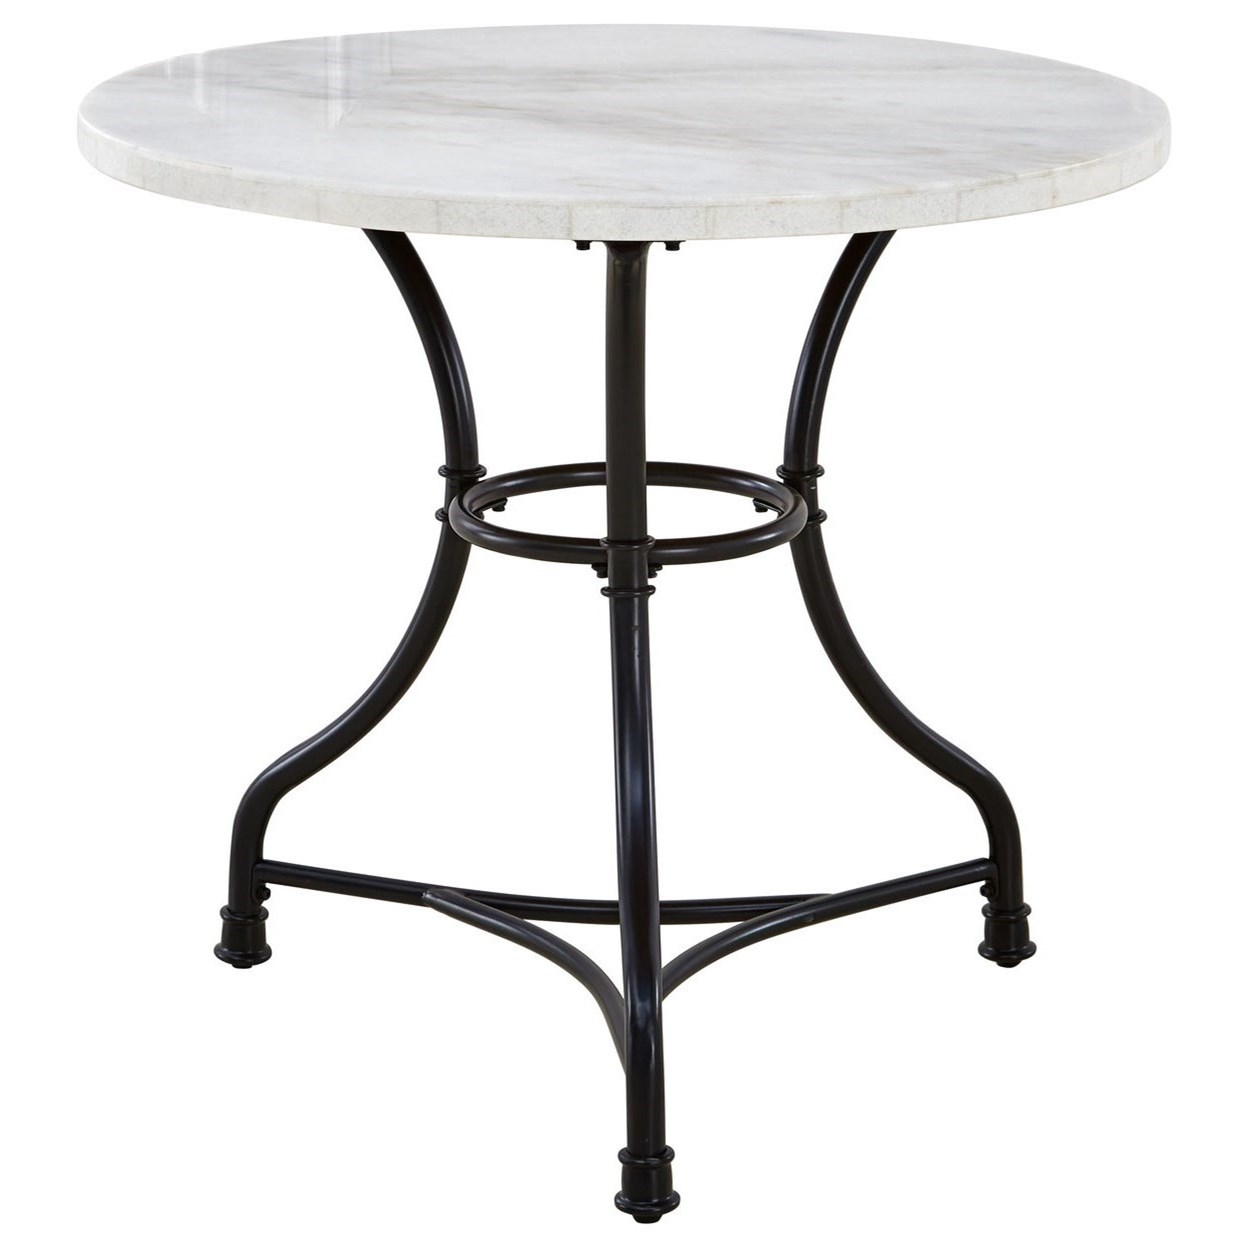 Steve Silver Claire Cr340t Contemporary Round Bistro Table With White Marble Top O Dunk O Bright Furniture Dining Tables